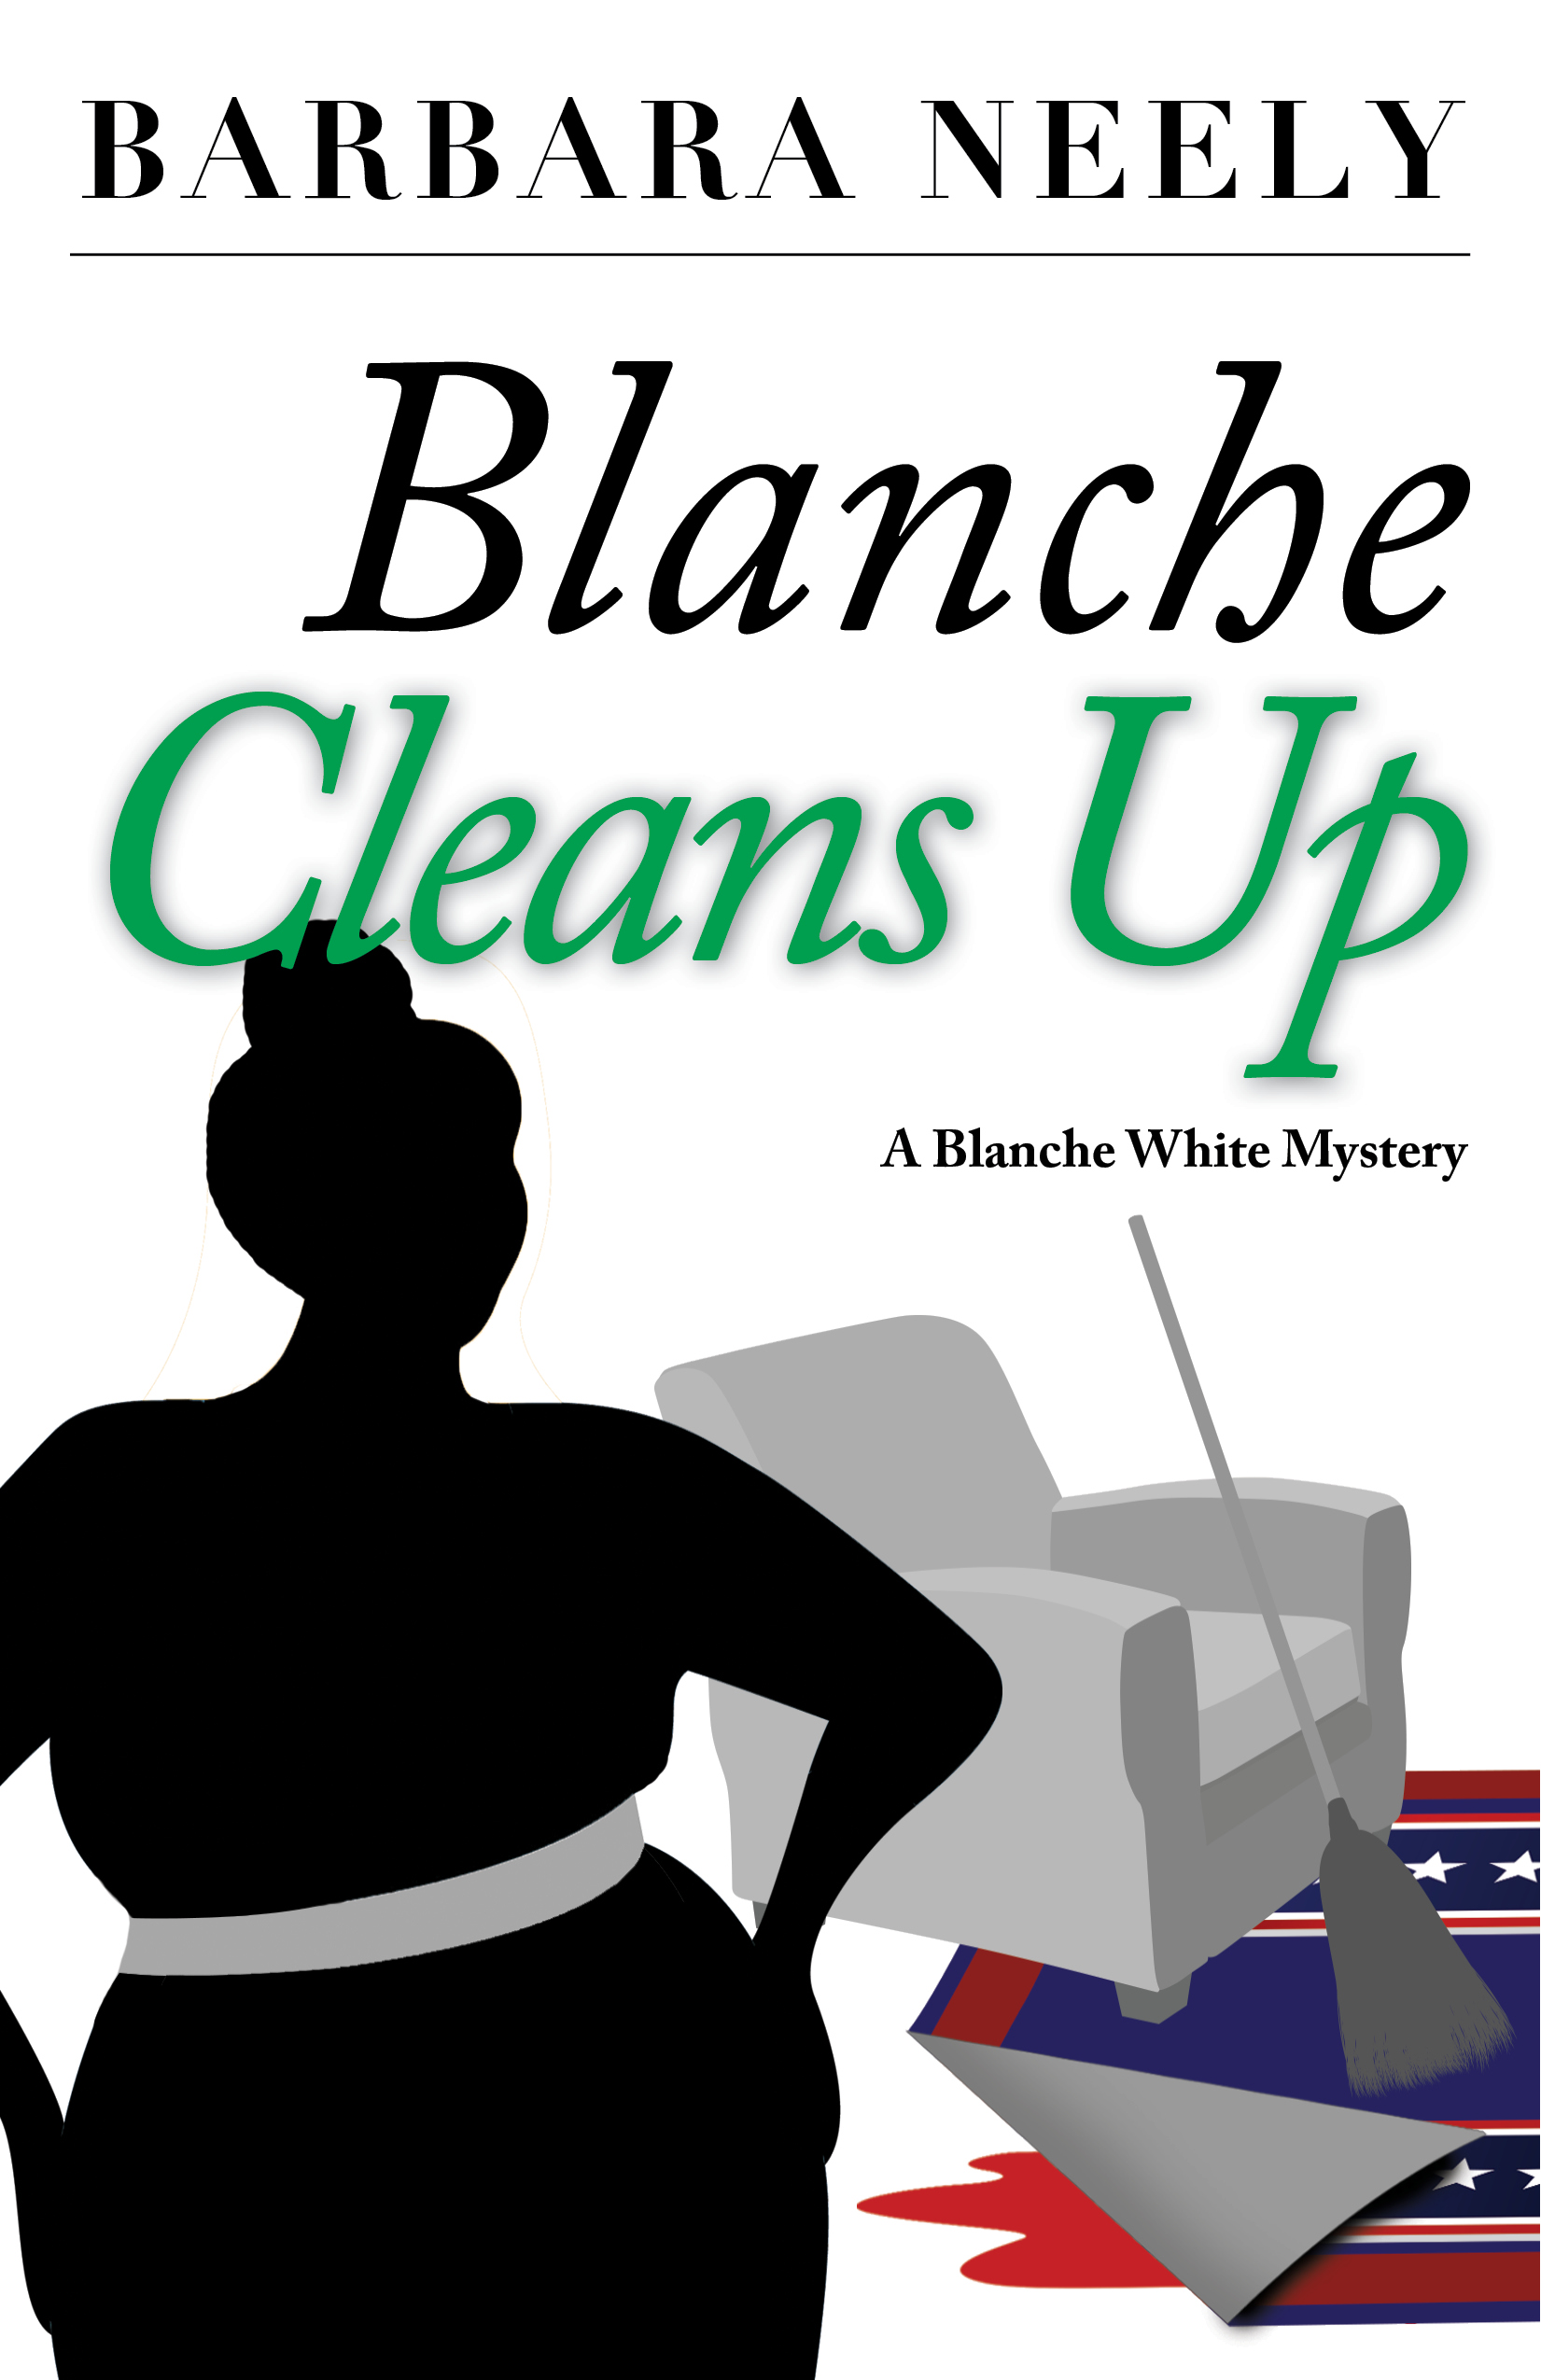 Blanche_Cleans_up_FrontCover-1.jpg